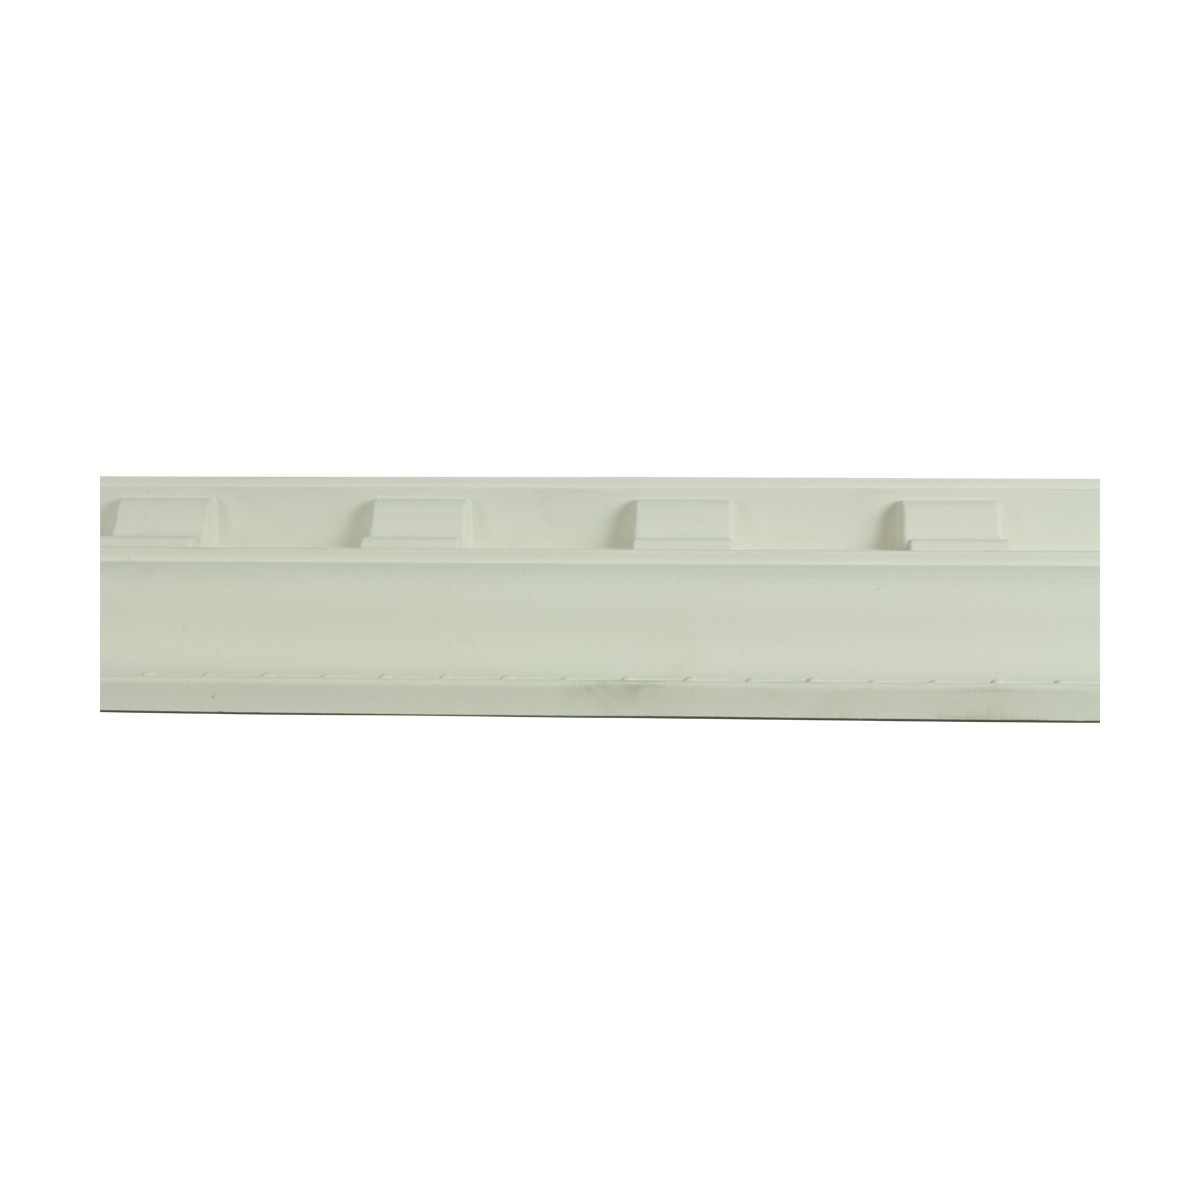 Renovators Supply Ornate Cornice White Urethane Chesterfield Design 5 Pieces Totaling 475 Length White PrePrimed Urethane Crown Cornice Molding Cornice Crown Home Depot Ekena Millwork Molding Wall Ceiling Corner Cornice Crown Cove Molding